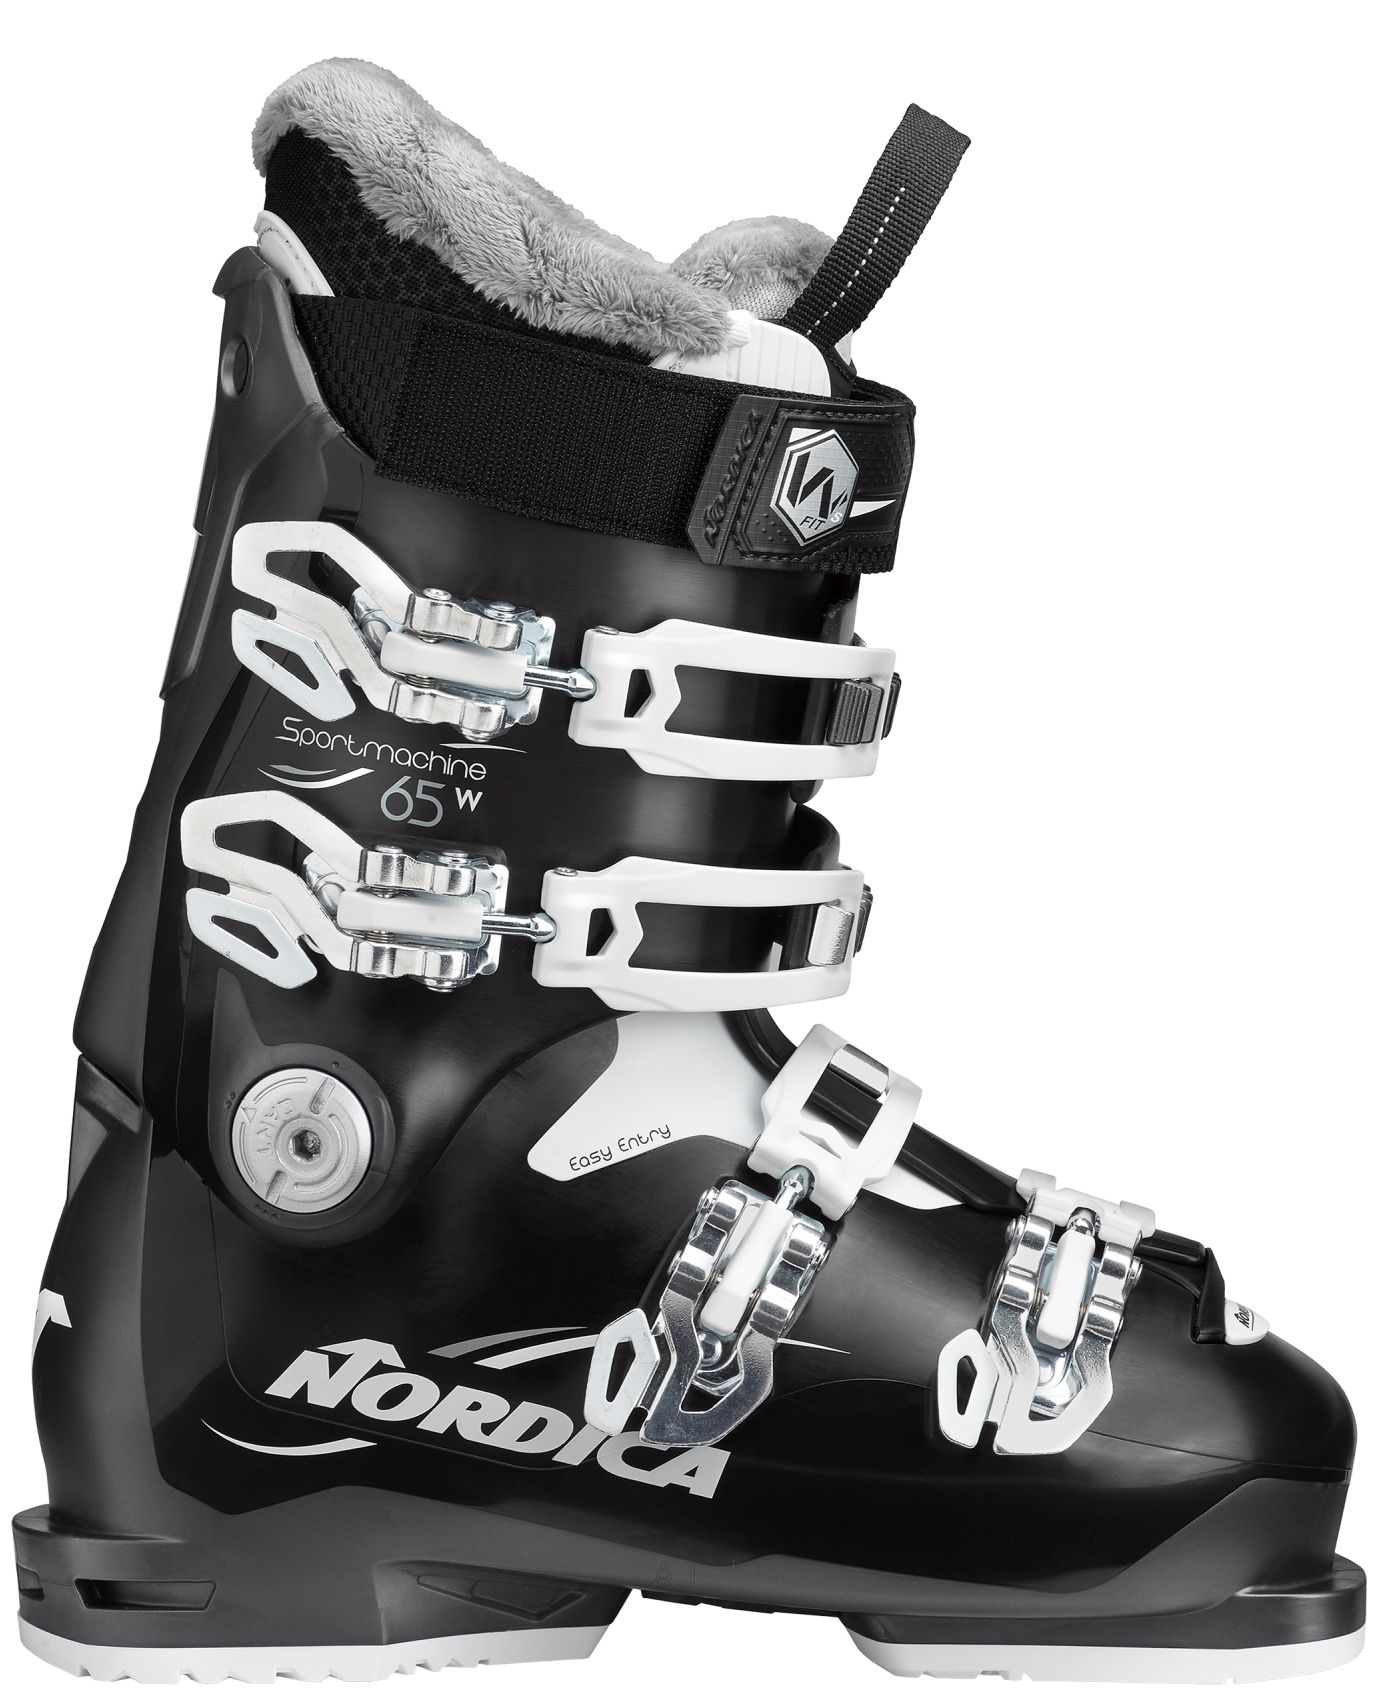 Nordica Sportmachine 65 W - black-anthracite-white 235